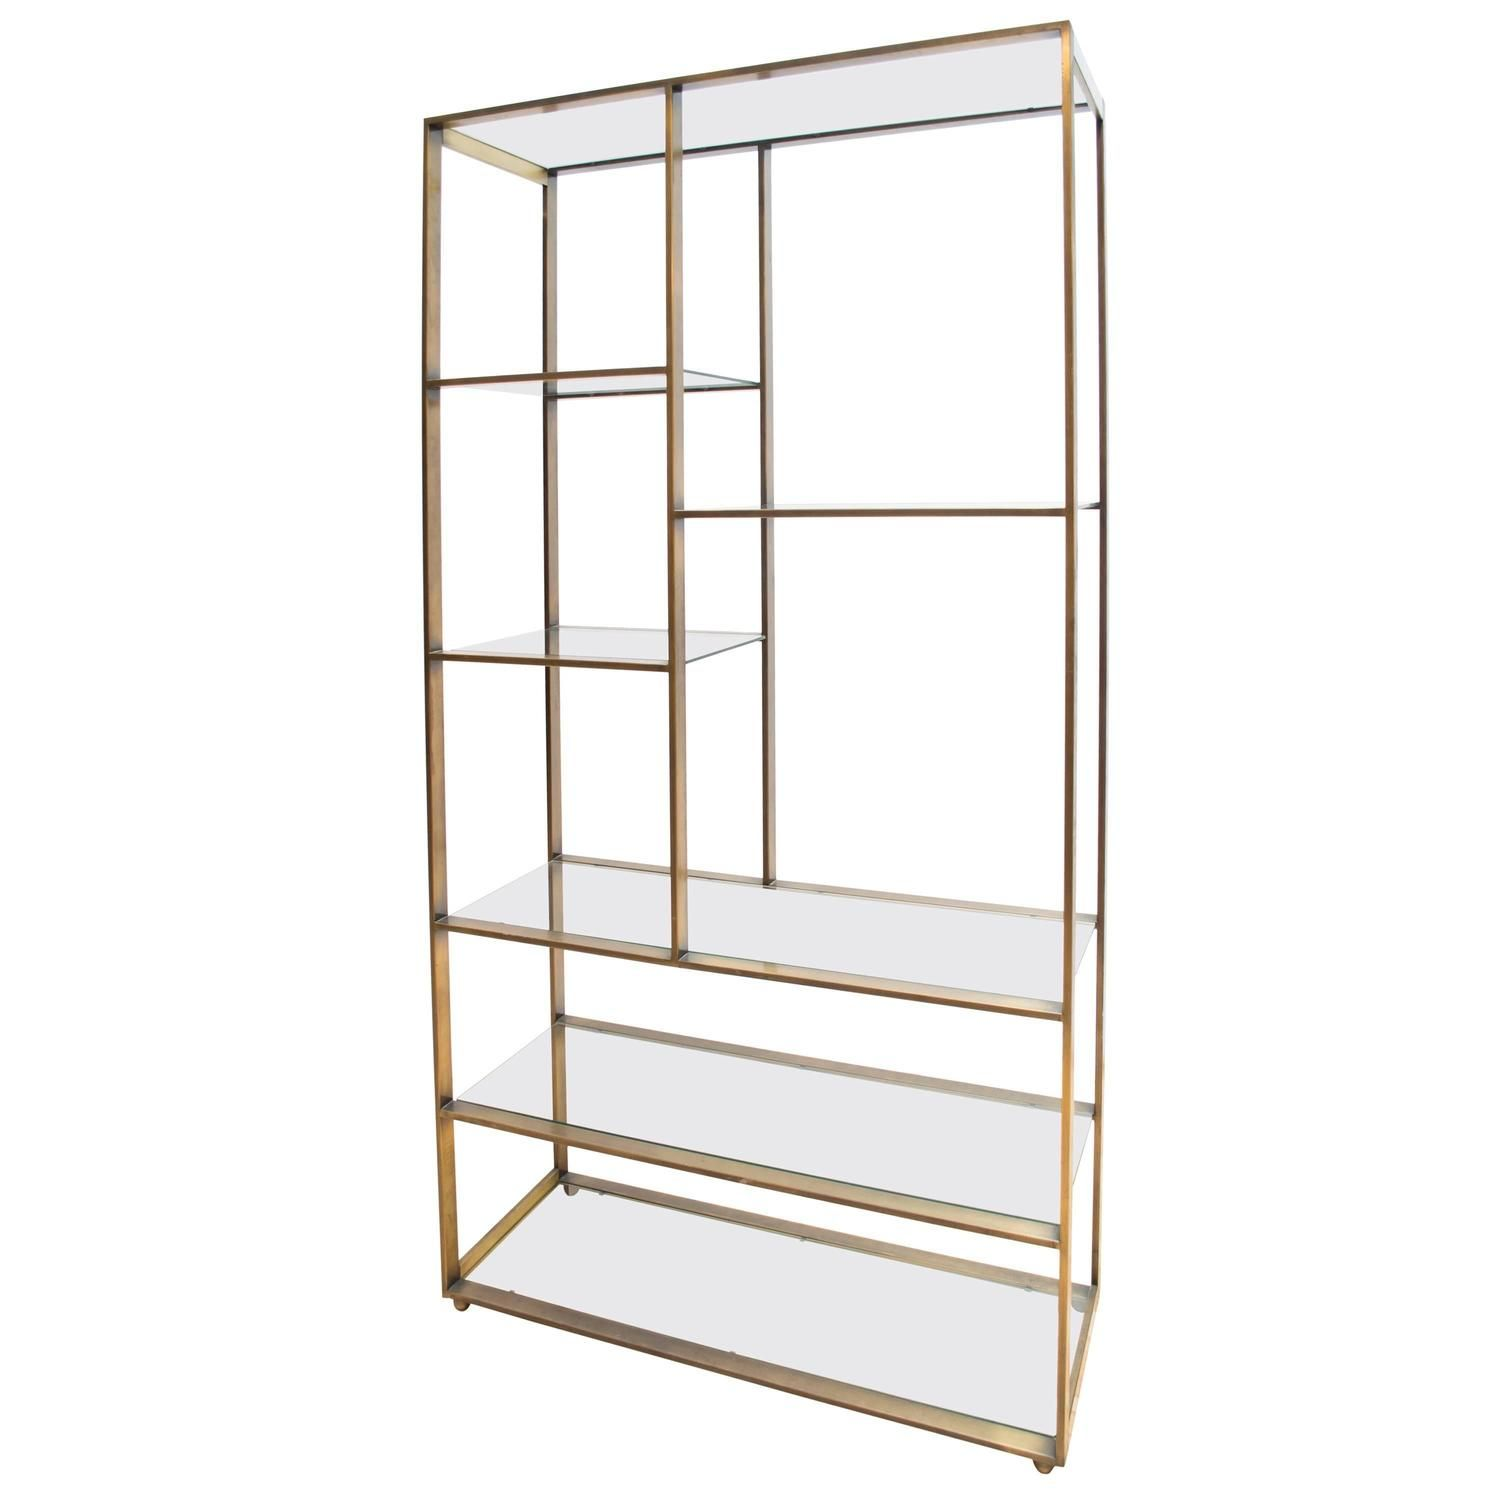 exceptional Brushed Nickel Etagere Part - 9: Bronze and Glass Milo Baughman Etagere